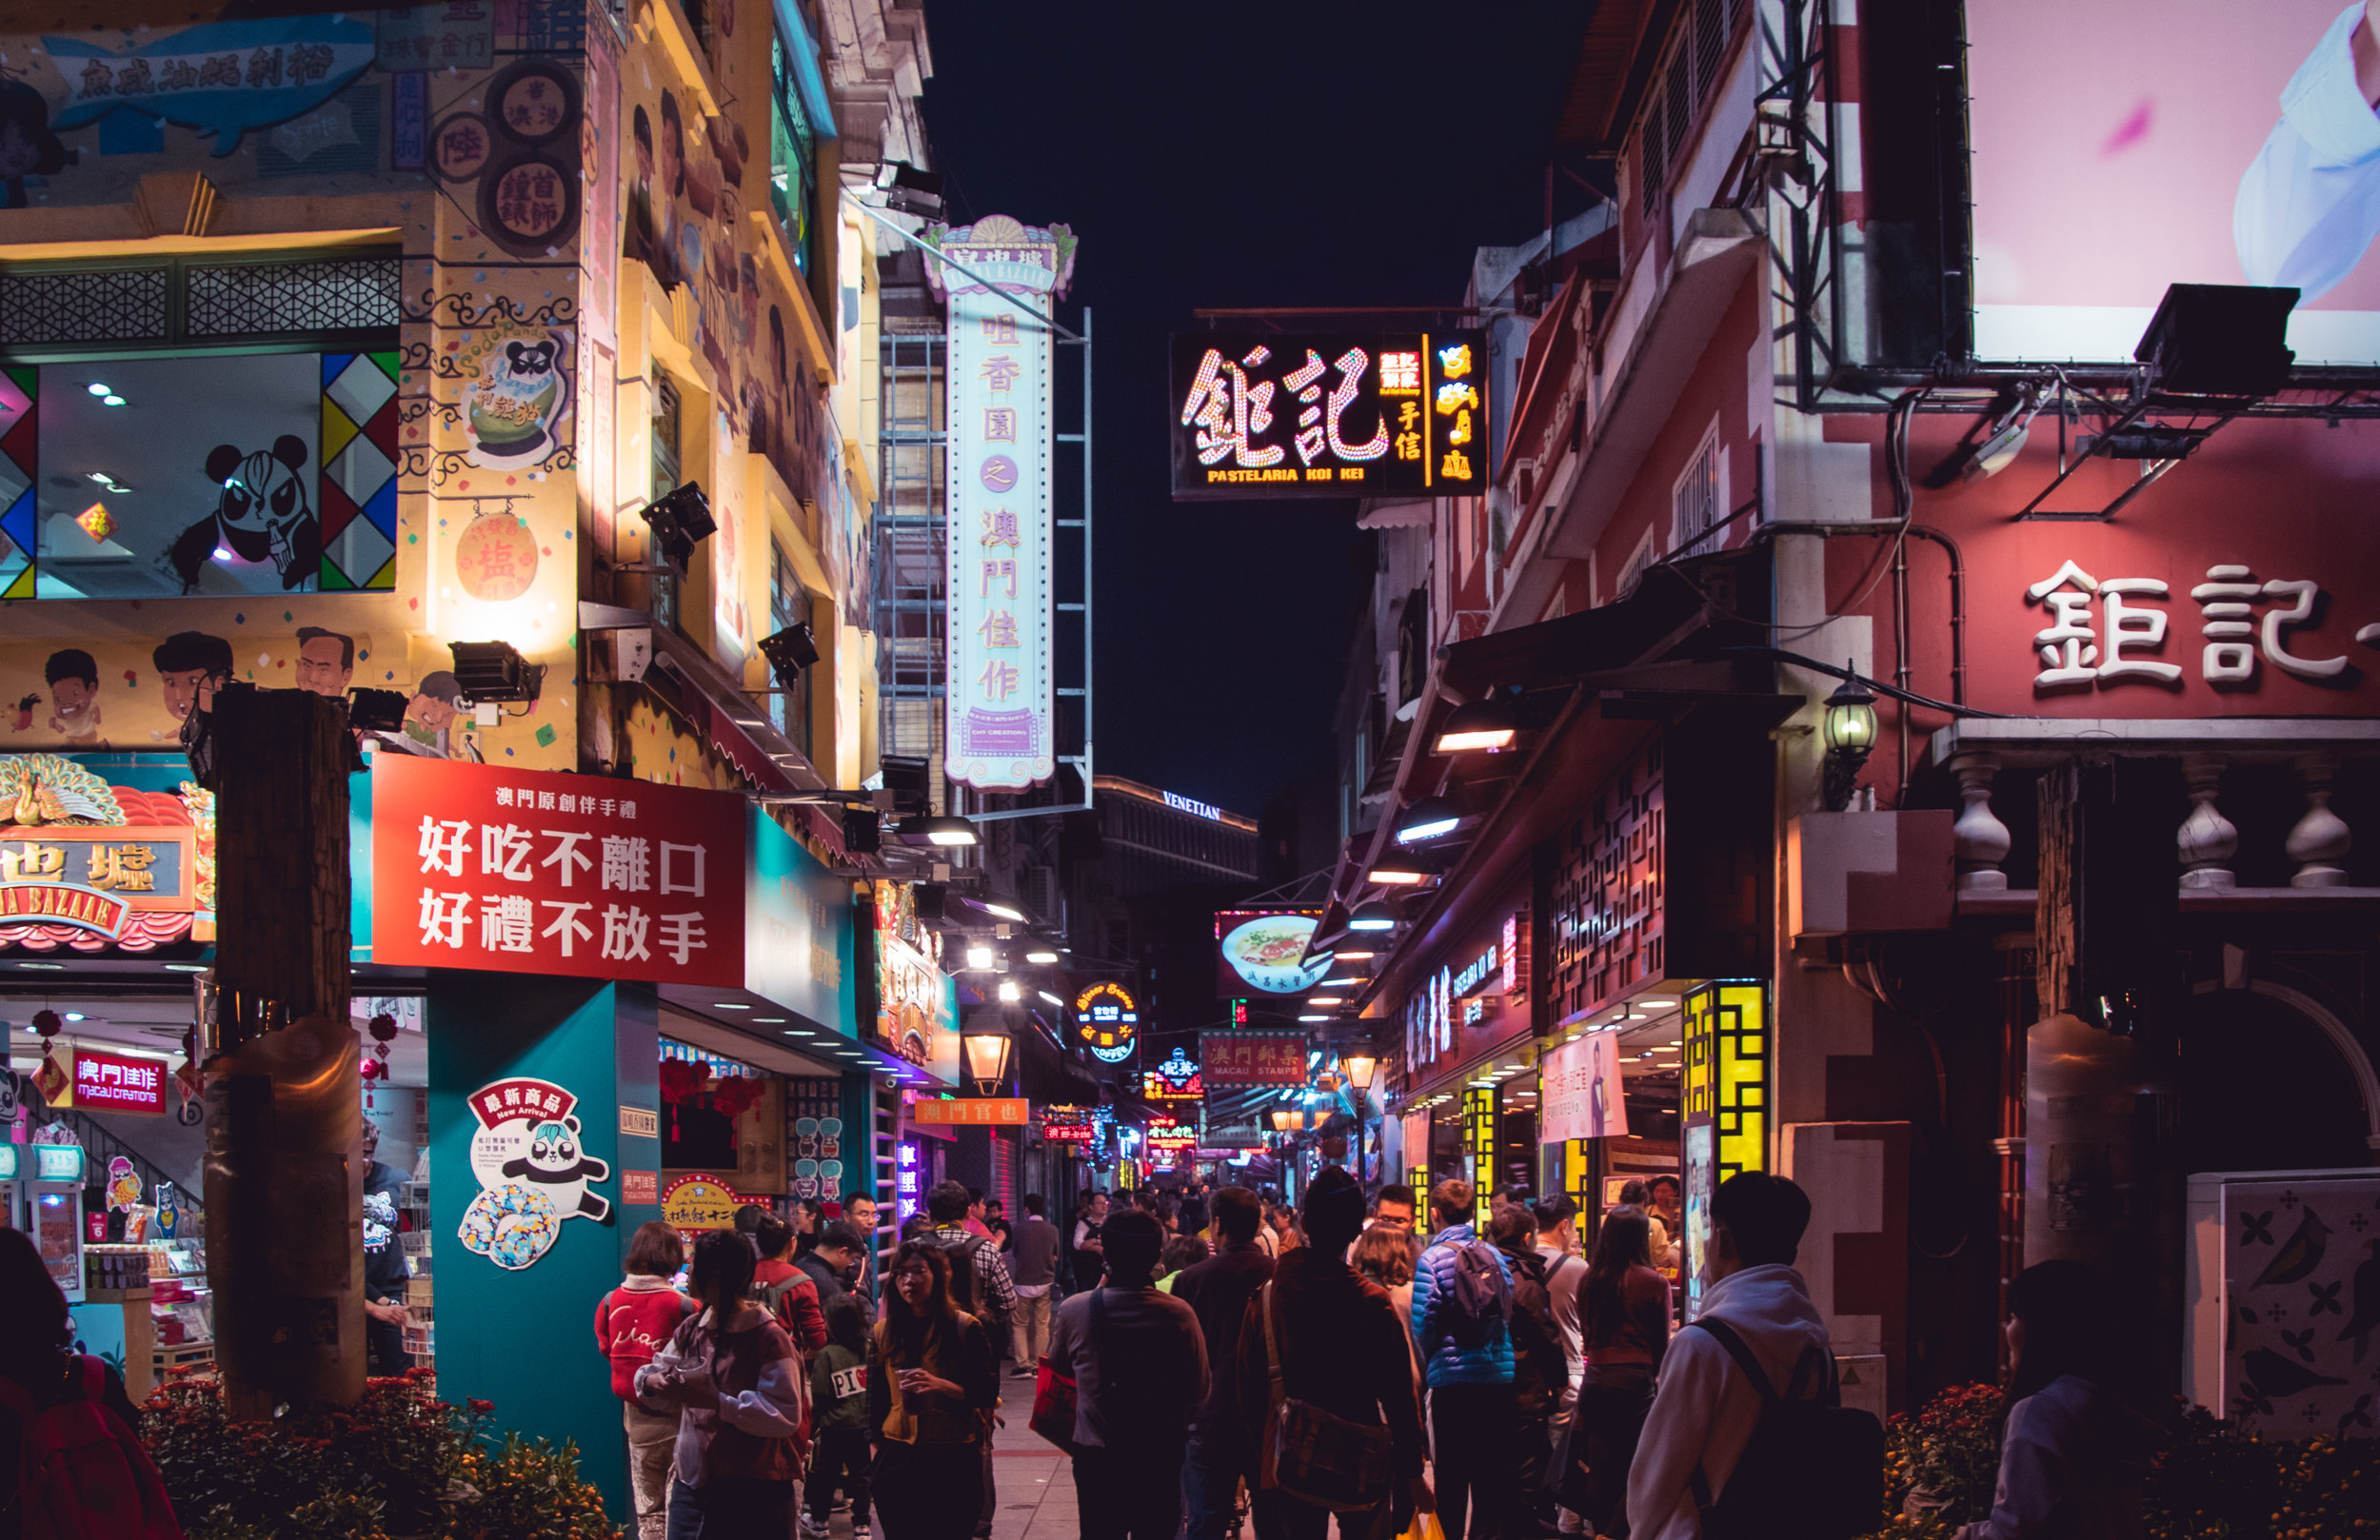 Make sure to visit the night market in Taipei - Amazing food and energy!